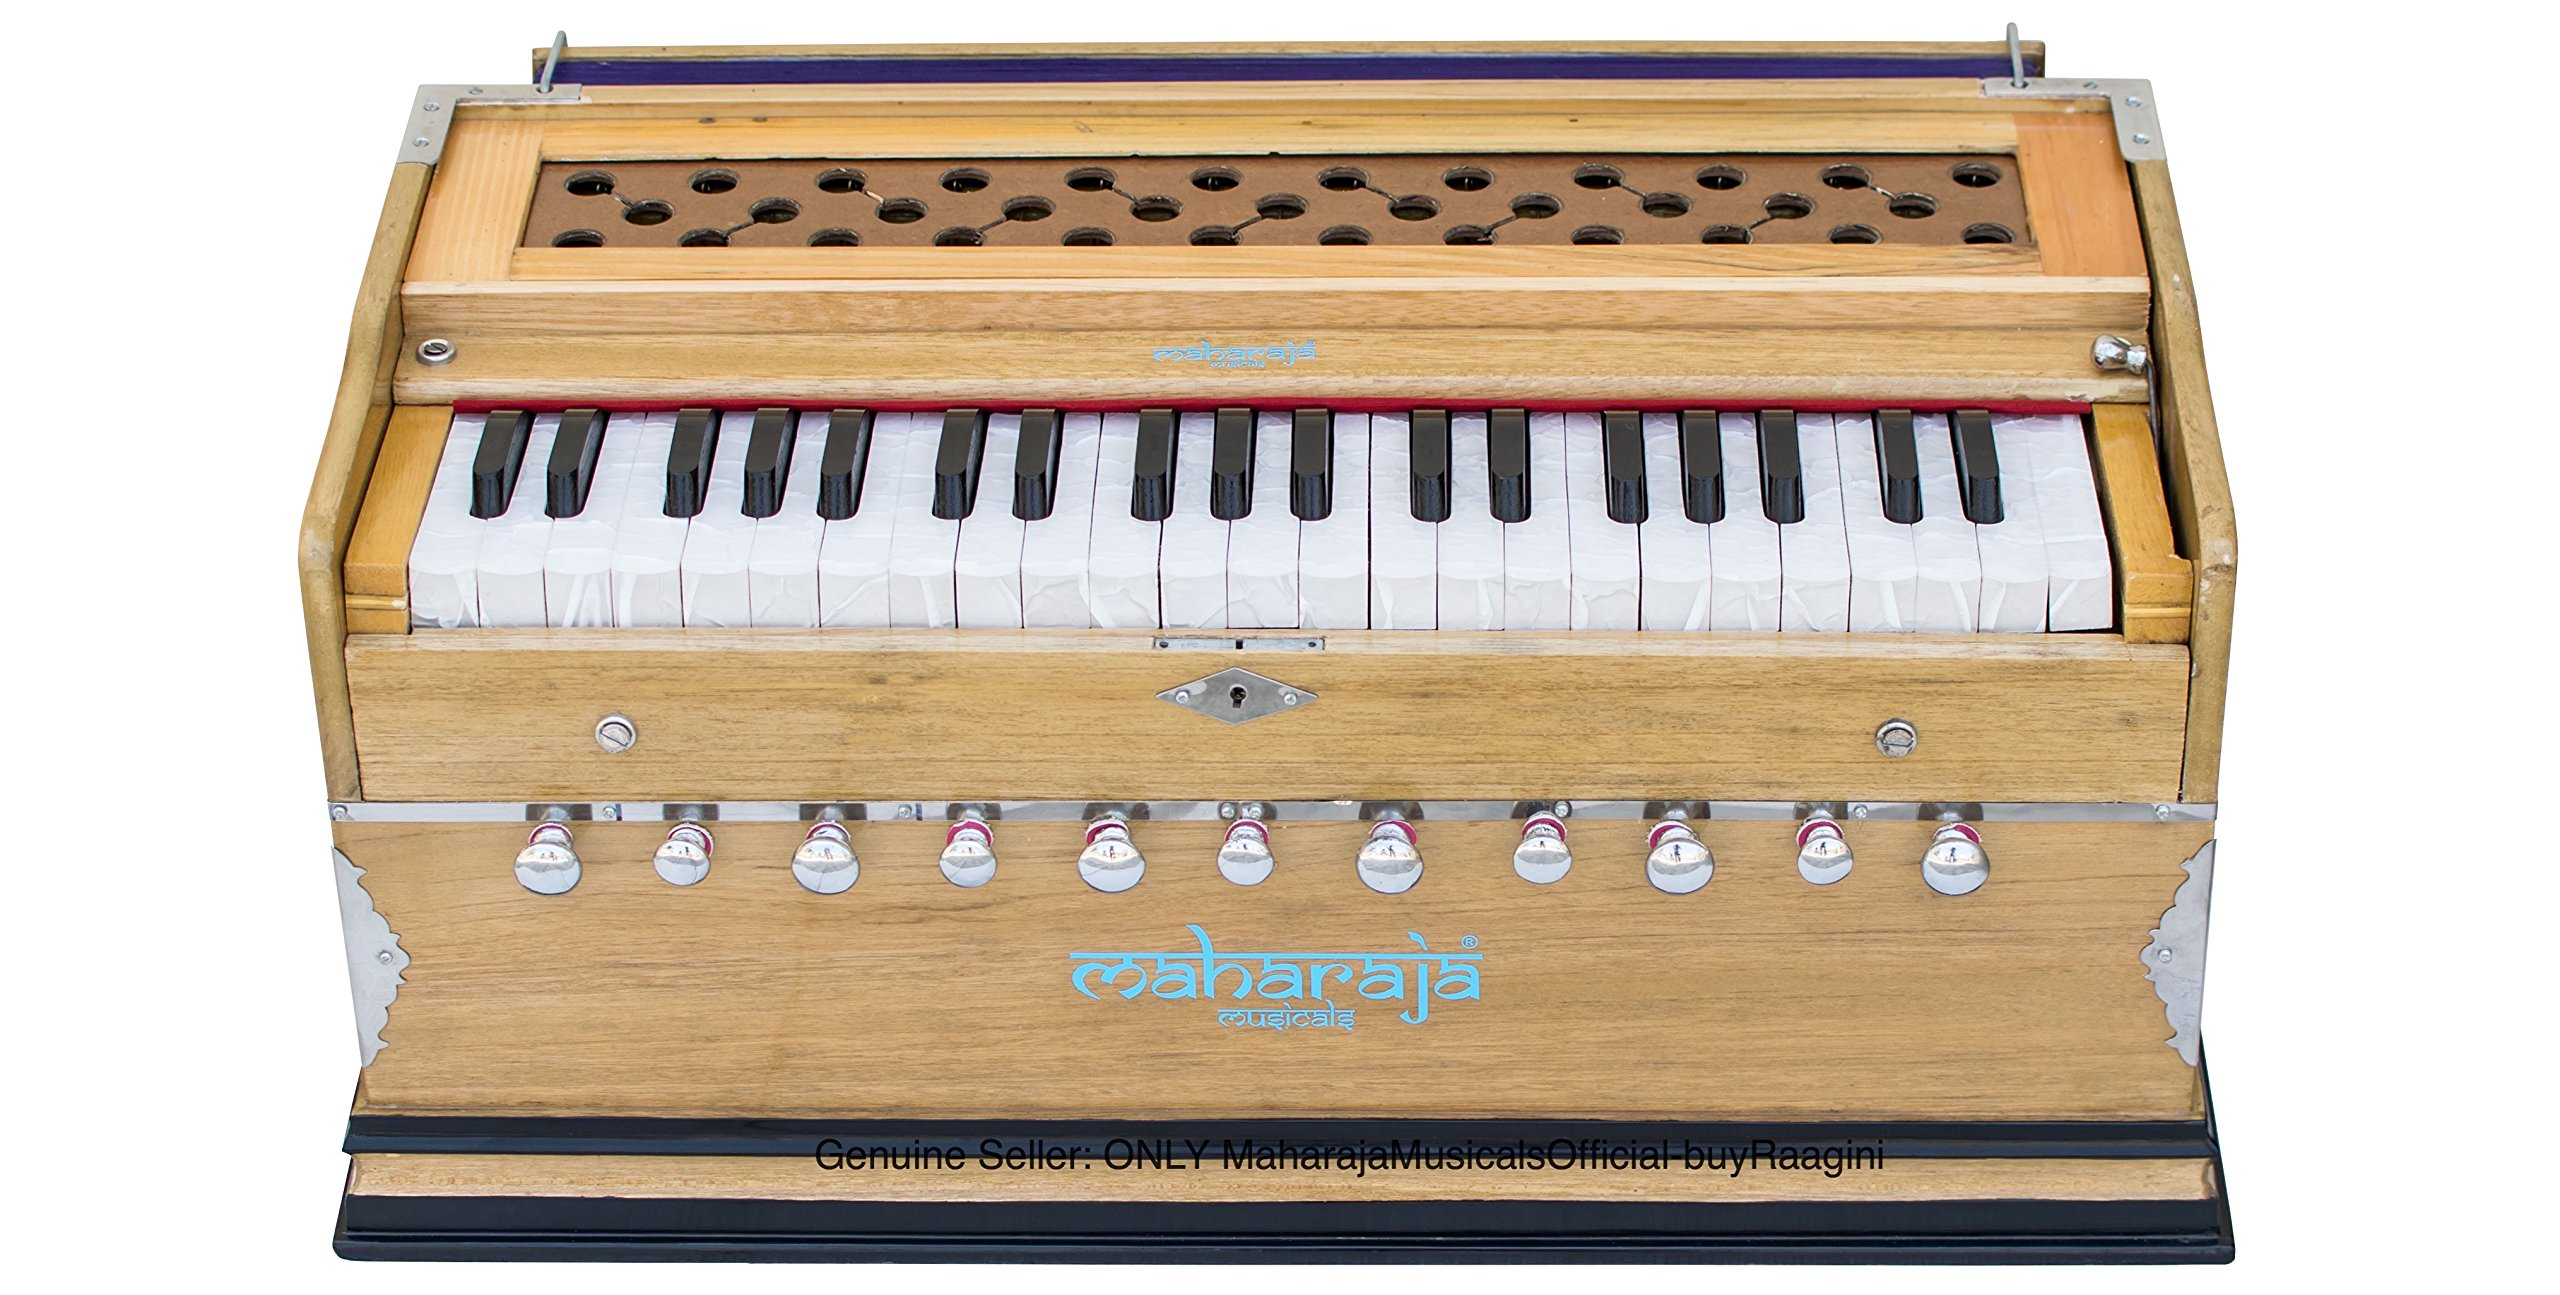 Maharaja Musicals Harmonium, 11 Stops, In USA, 3 1/2 Octave, Double Reed, Coupler, Natural Color, Standard, Book, Padded Bag, A440 Tuned, Harmonium Indian Musical Instrument (PDI-AAE)